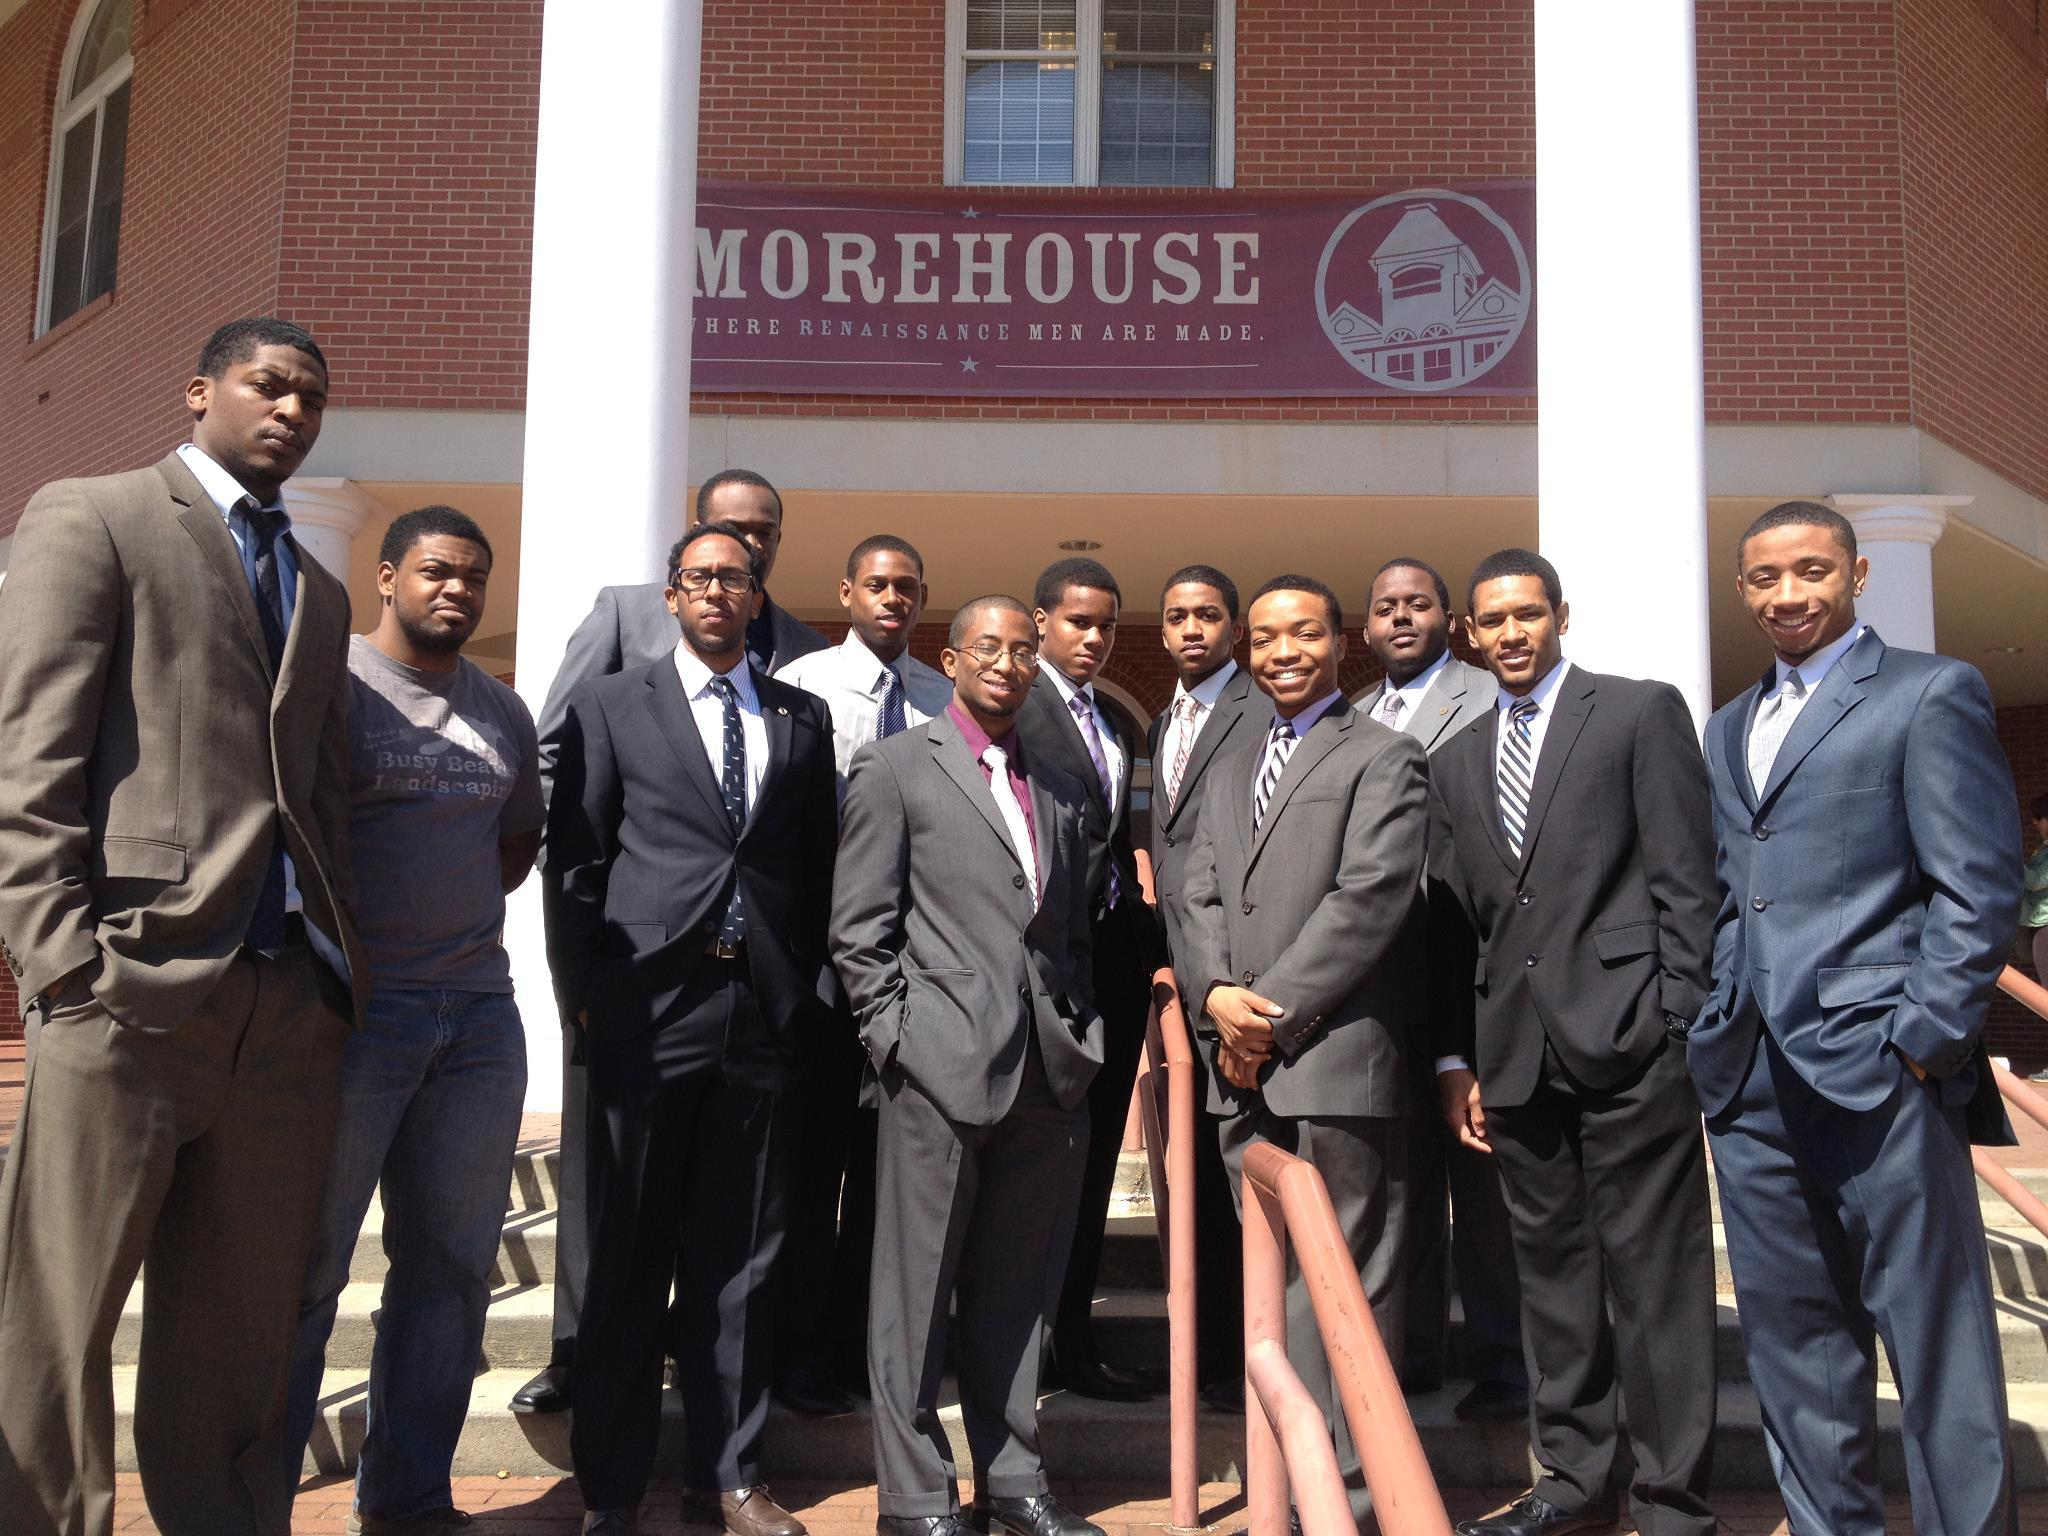 Society of Physics Students Morehouse College